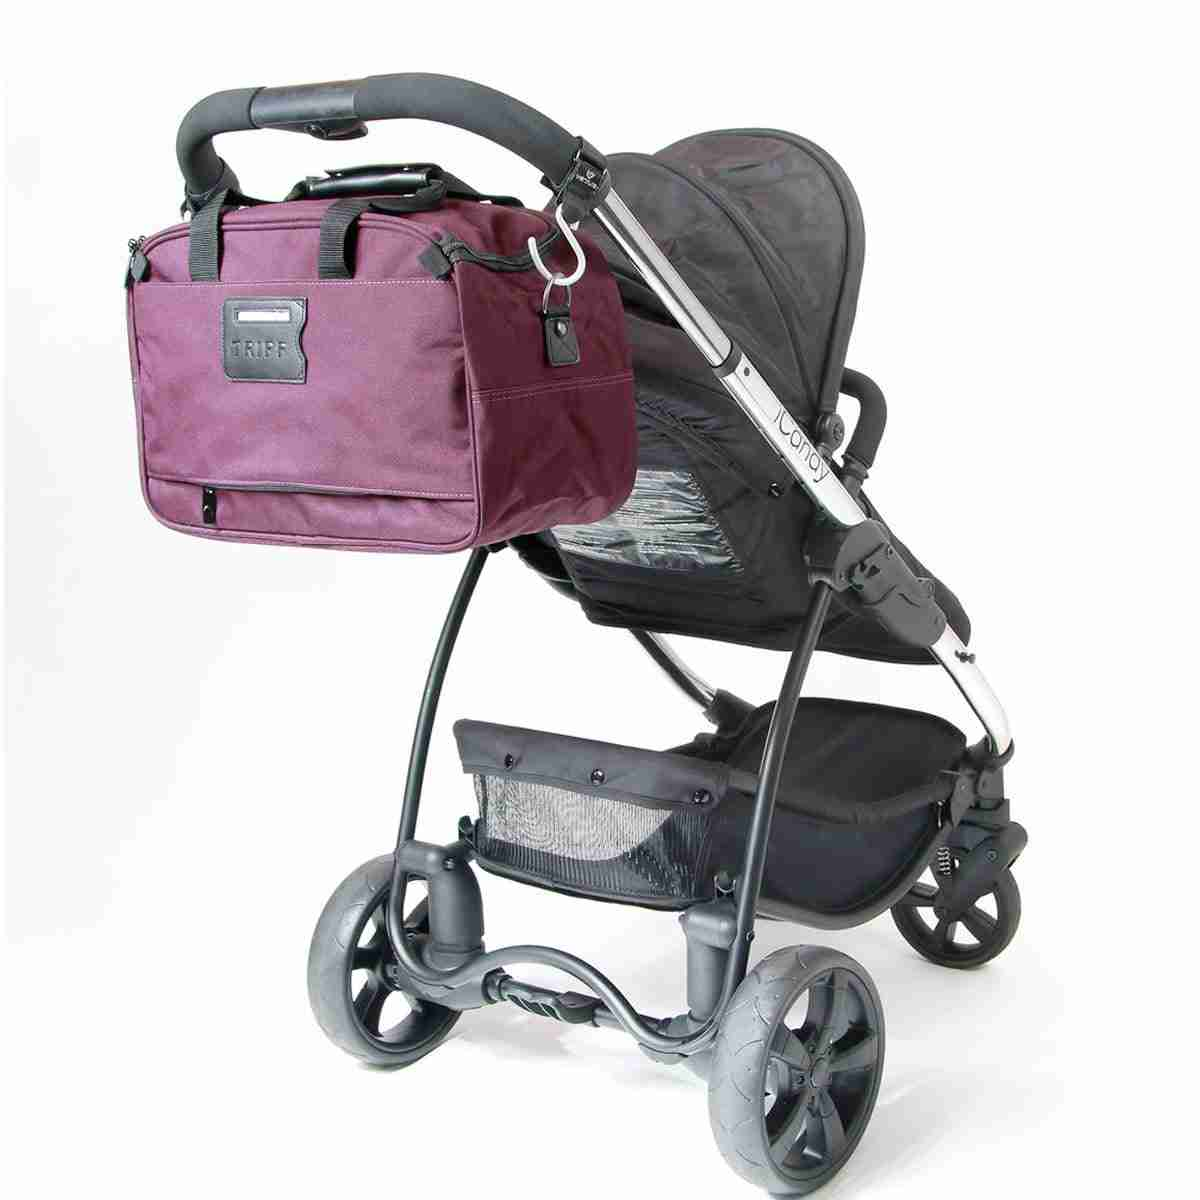 Keep your changing bag safetly attached to your buggy